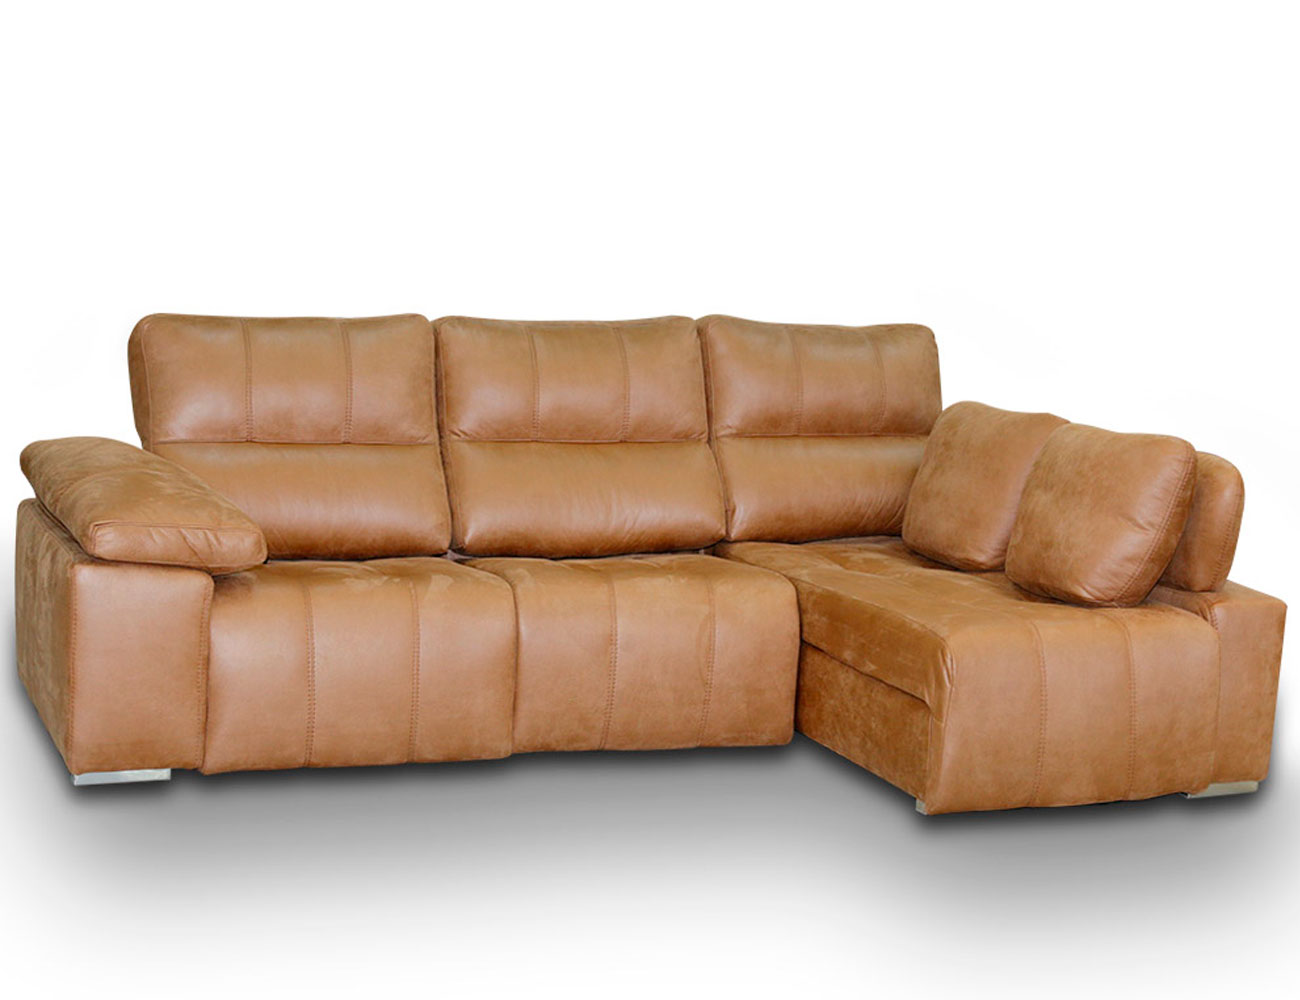 Sofa chaiselongue relax 2 motores anti manchas53